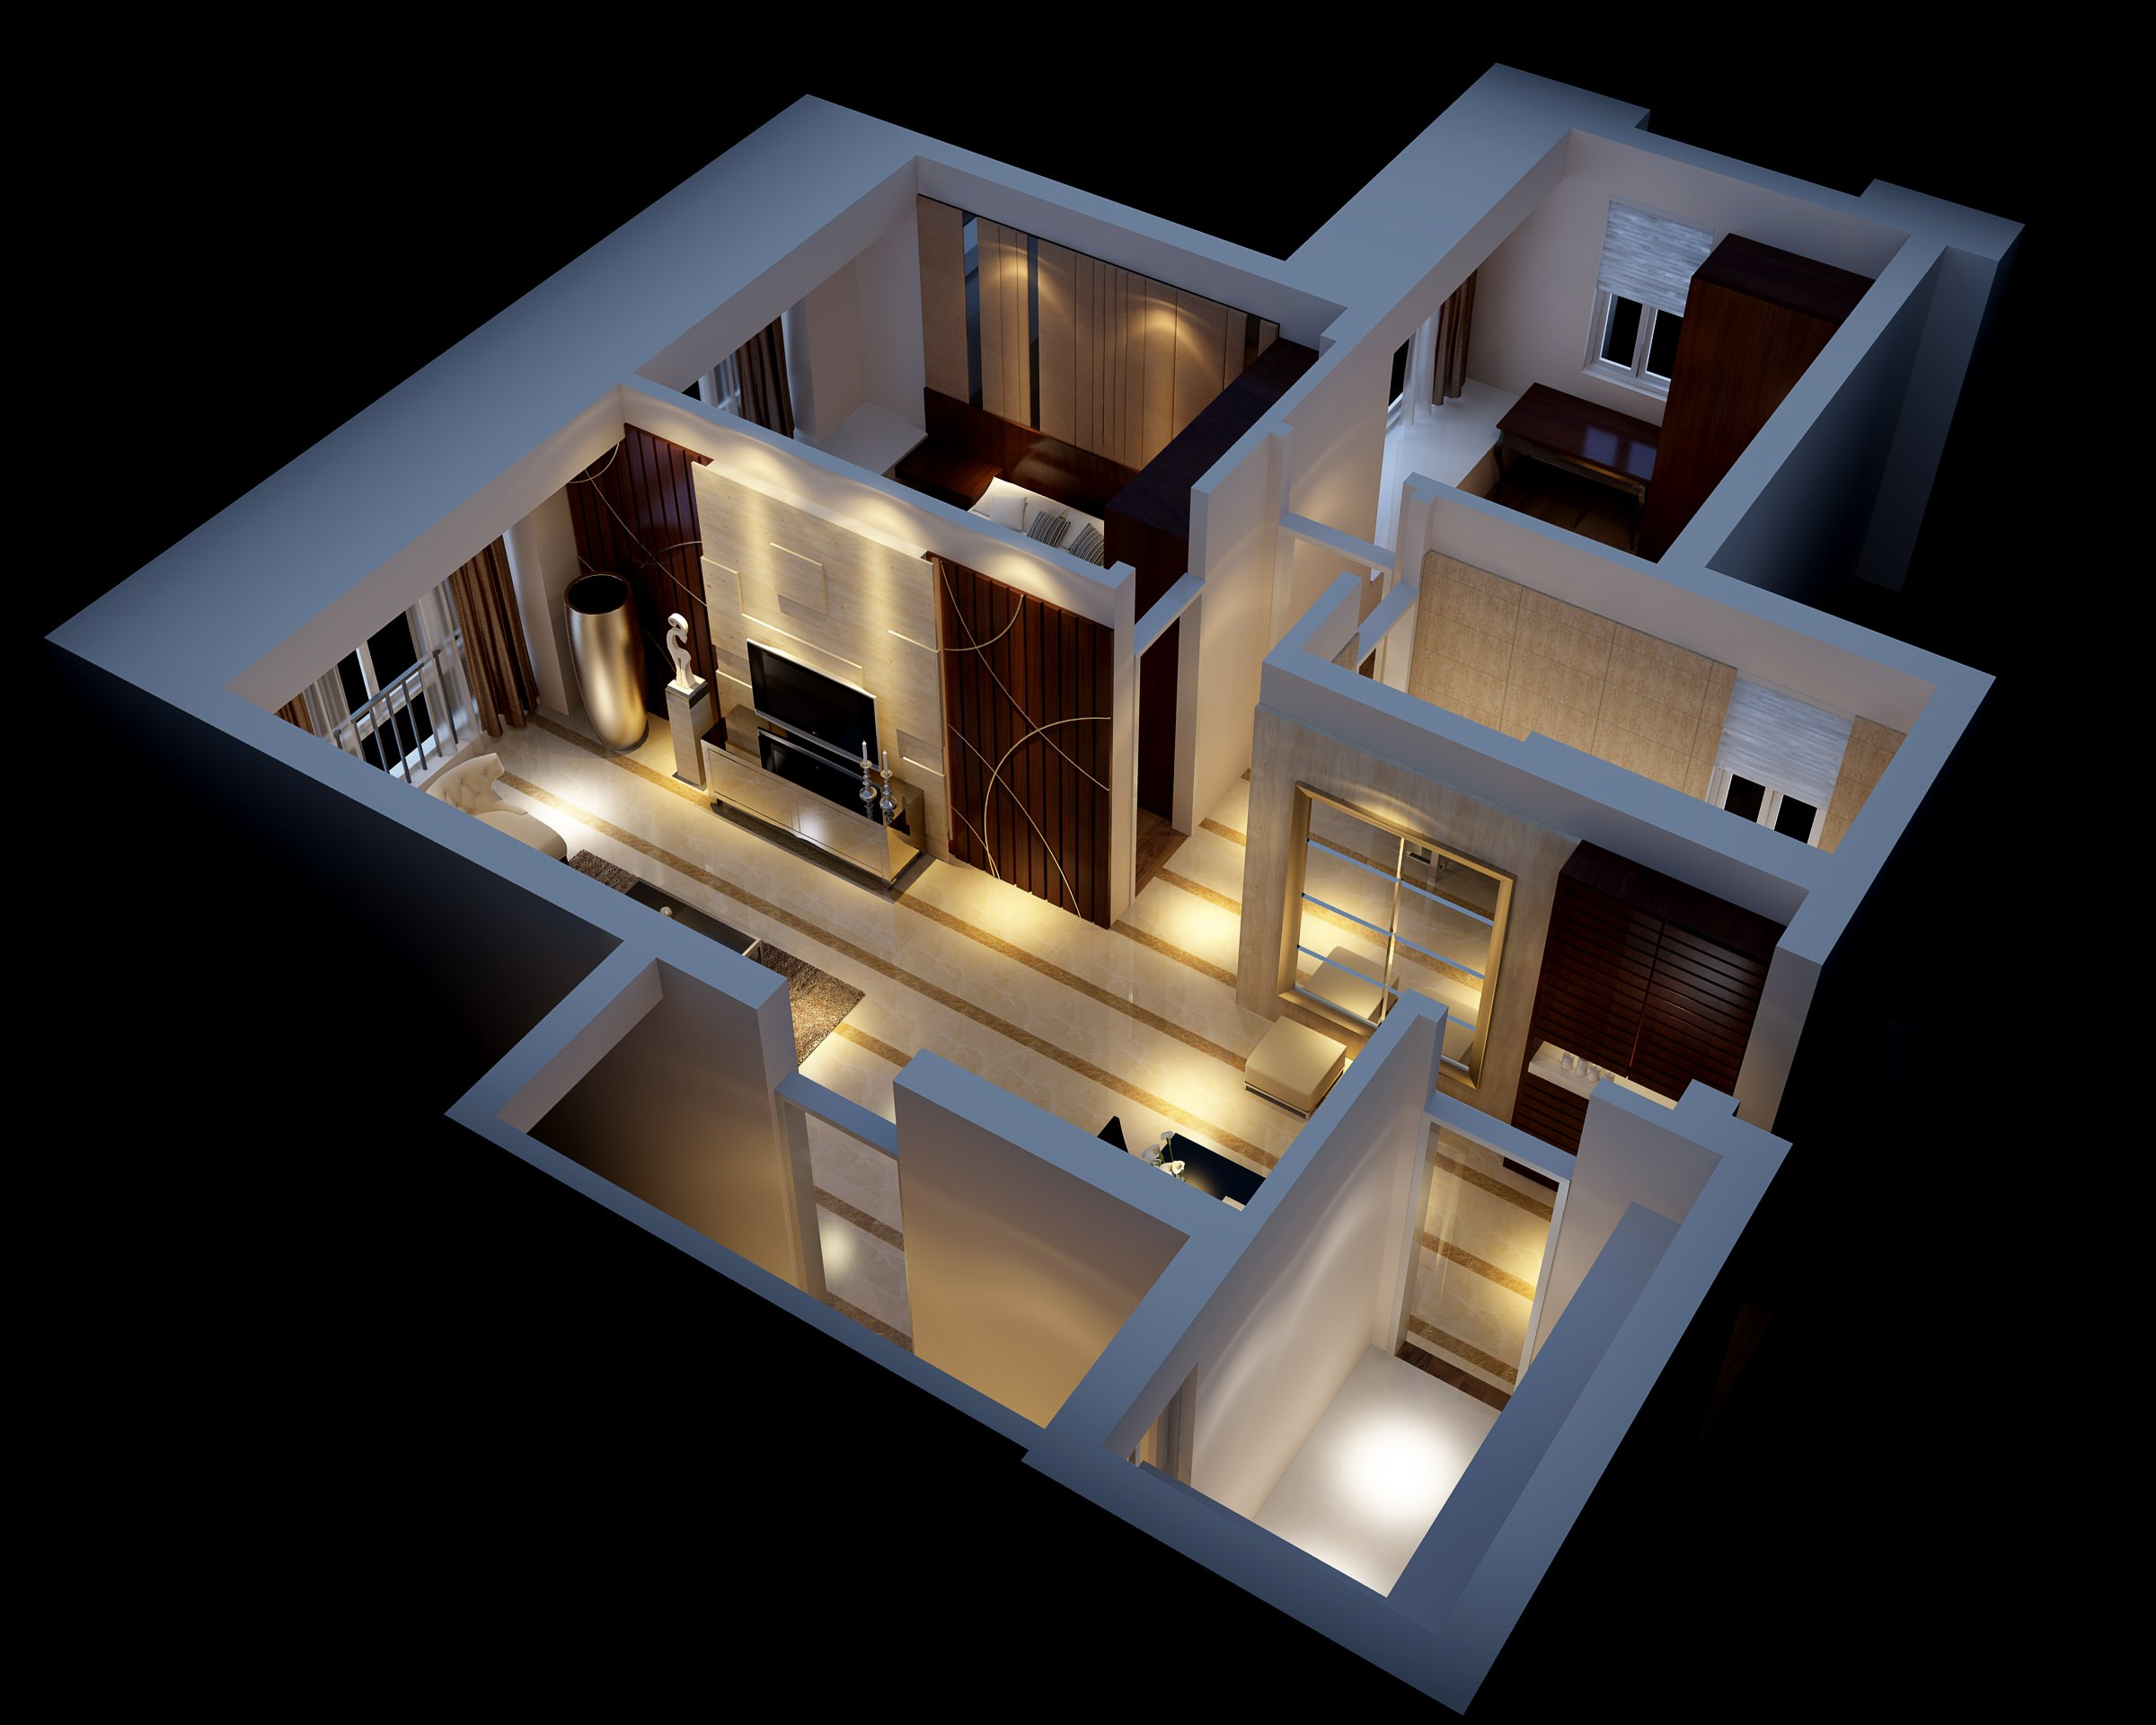 Modern house interior fully furnished 3d model max for Model bedroom interior design